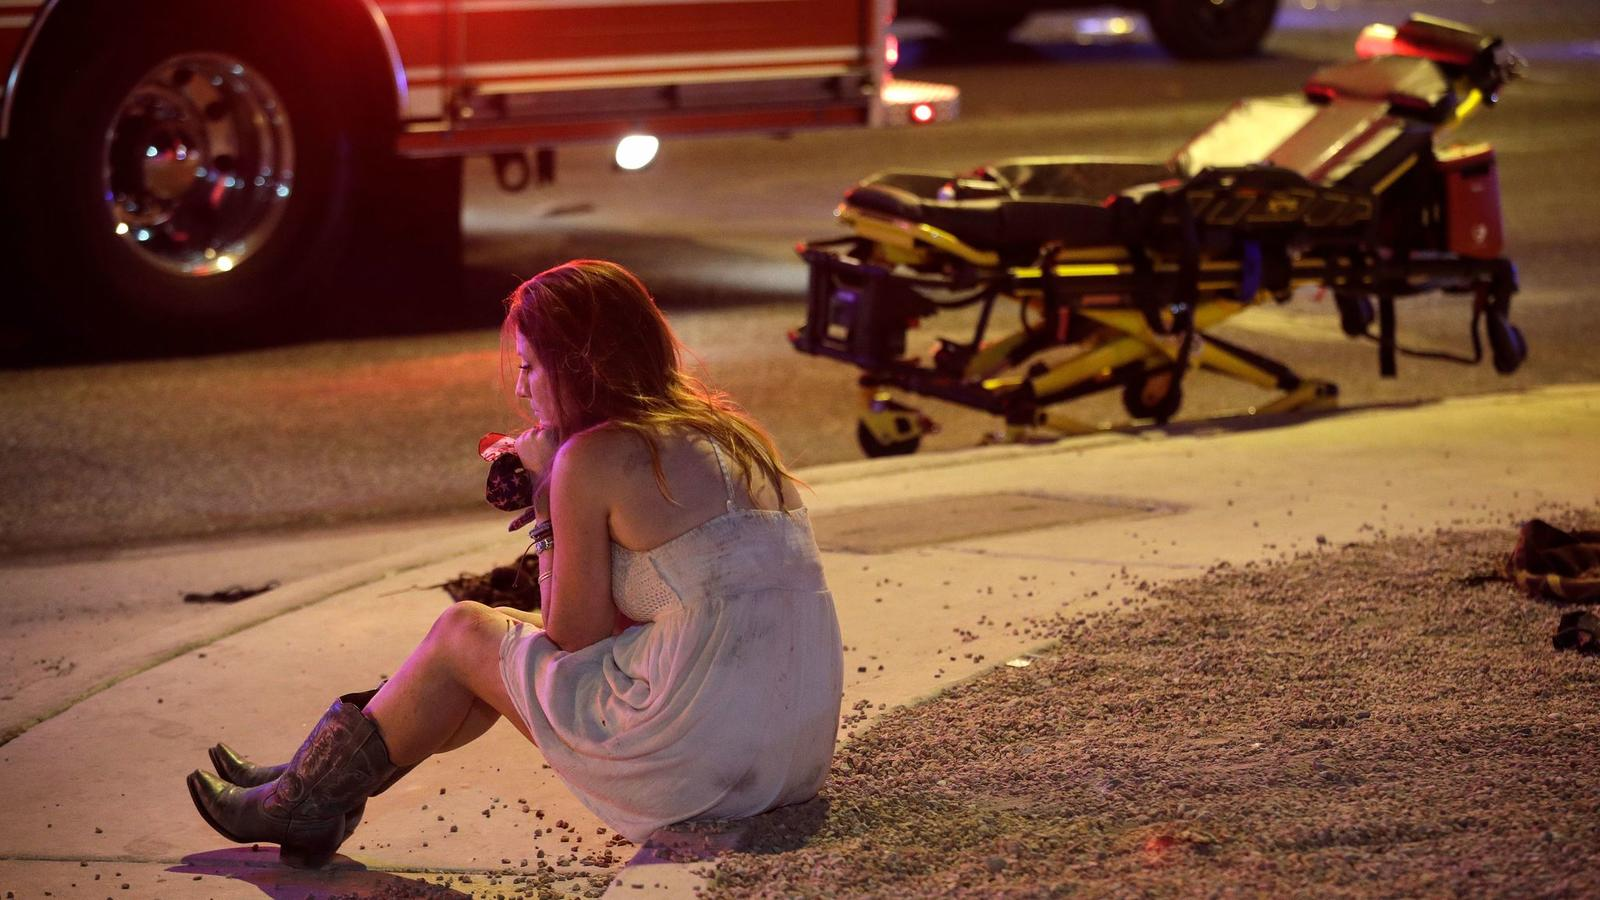 Mass shooting aftermath in Las Vegas - PHOTO CREDIT - John Locher, Associated Press